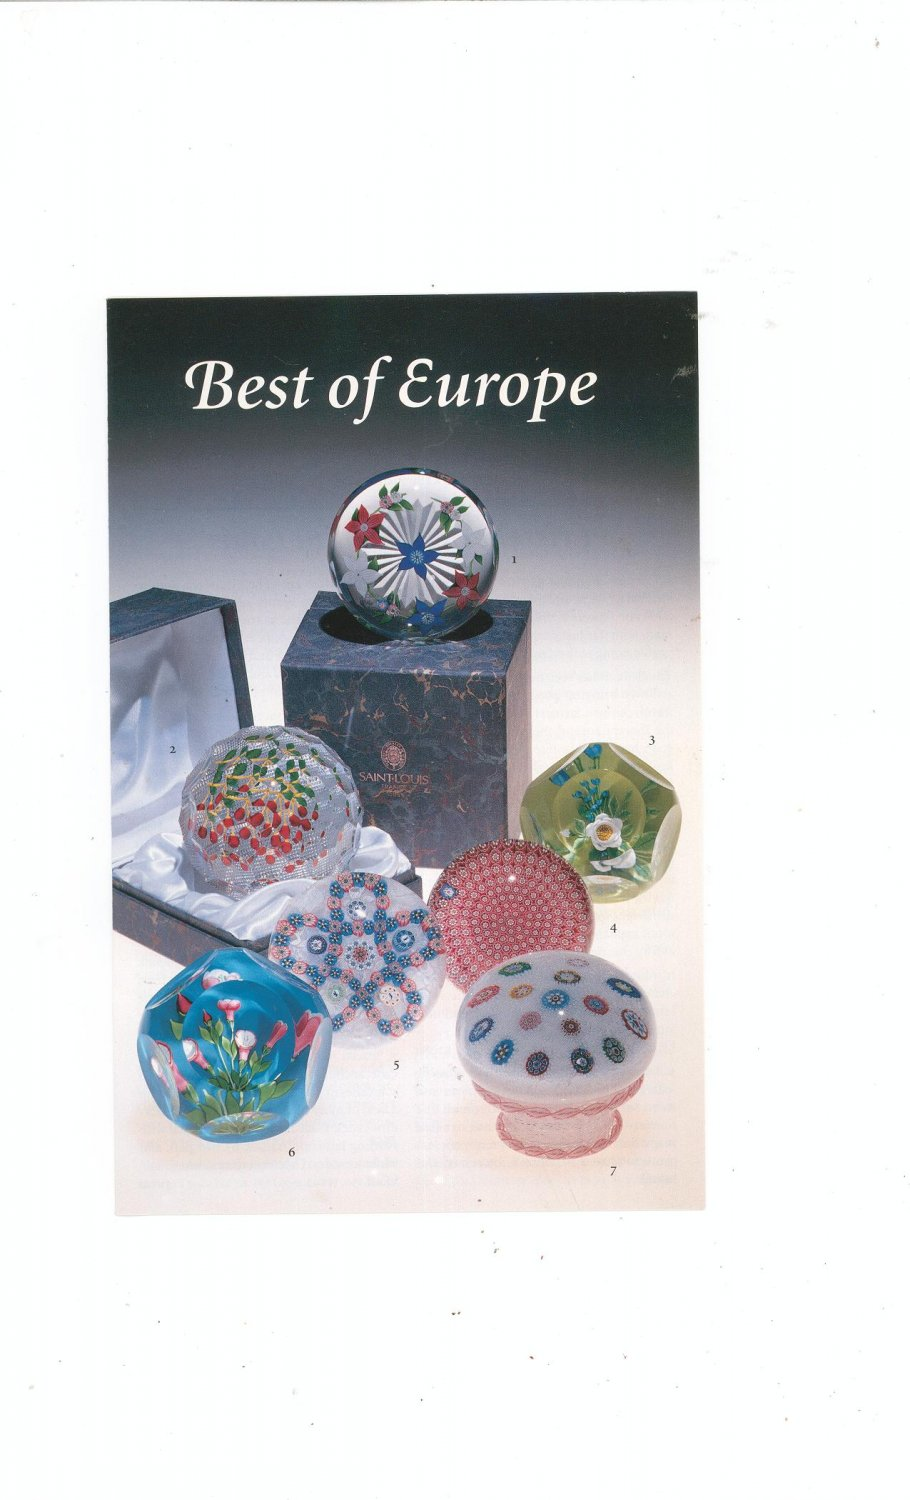 Best Of Europe Catalog / Brochure by L. H. Selman Ltd. Paperweights